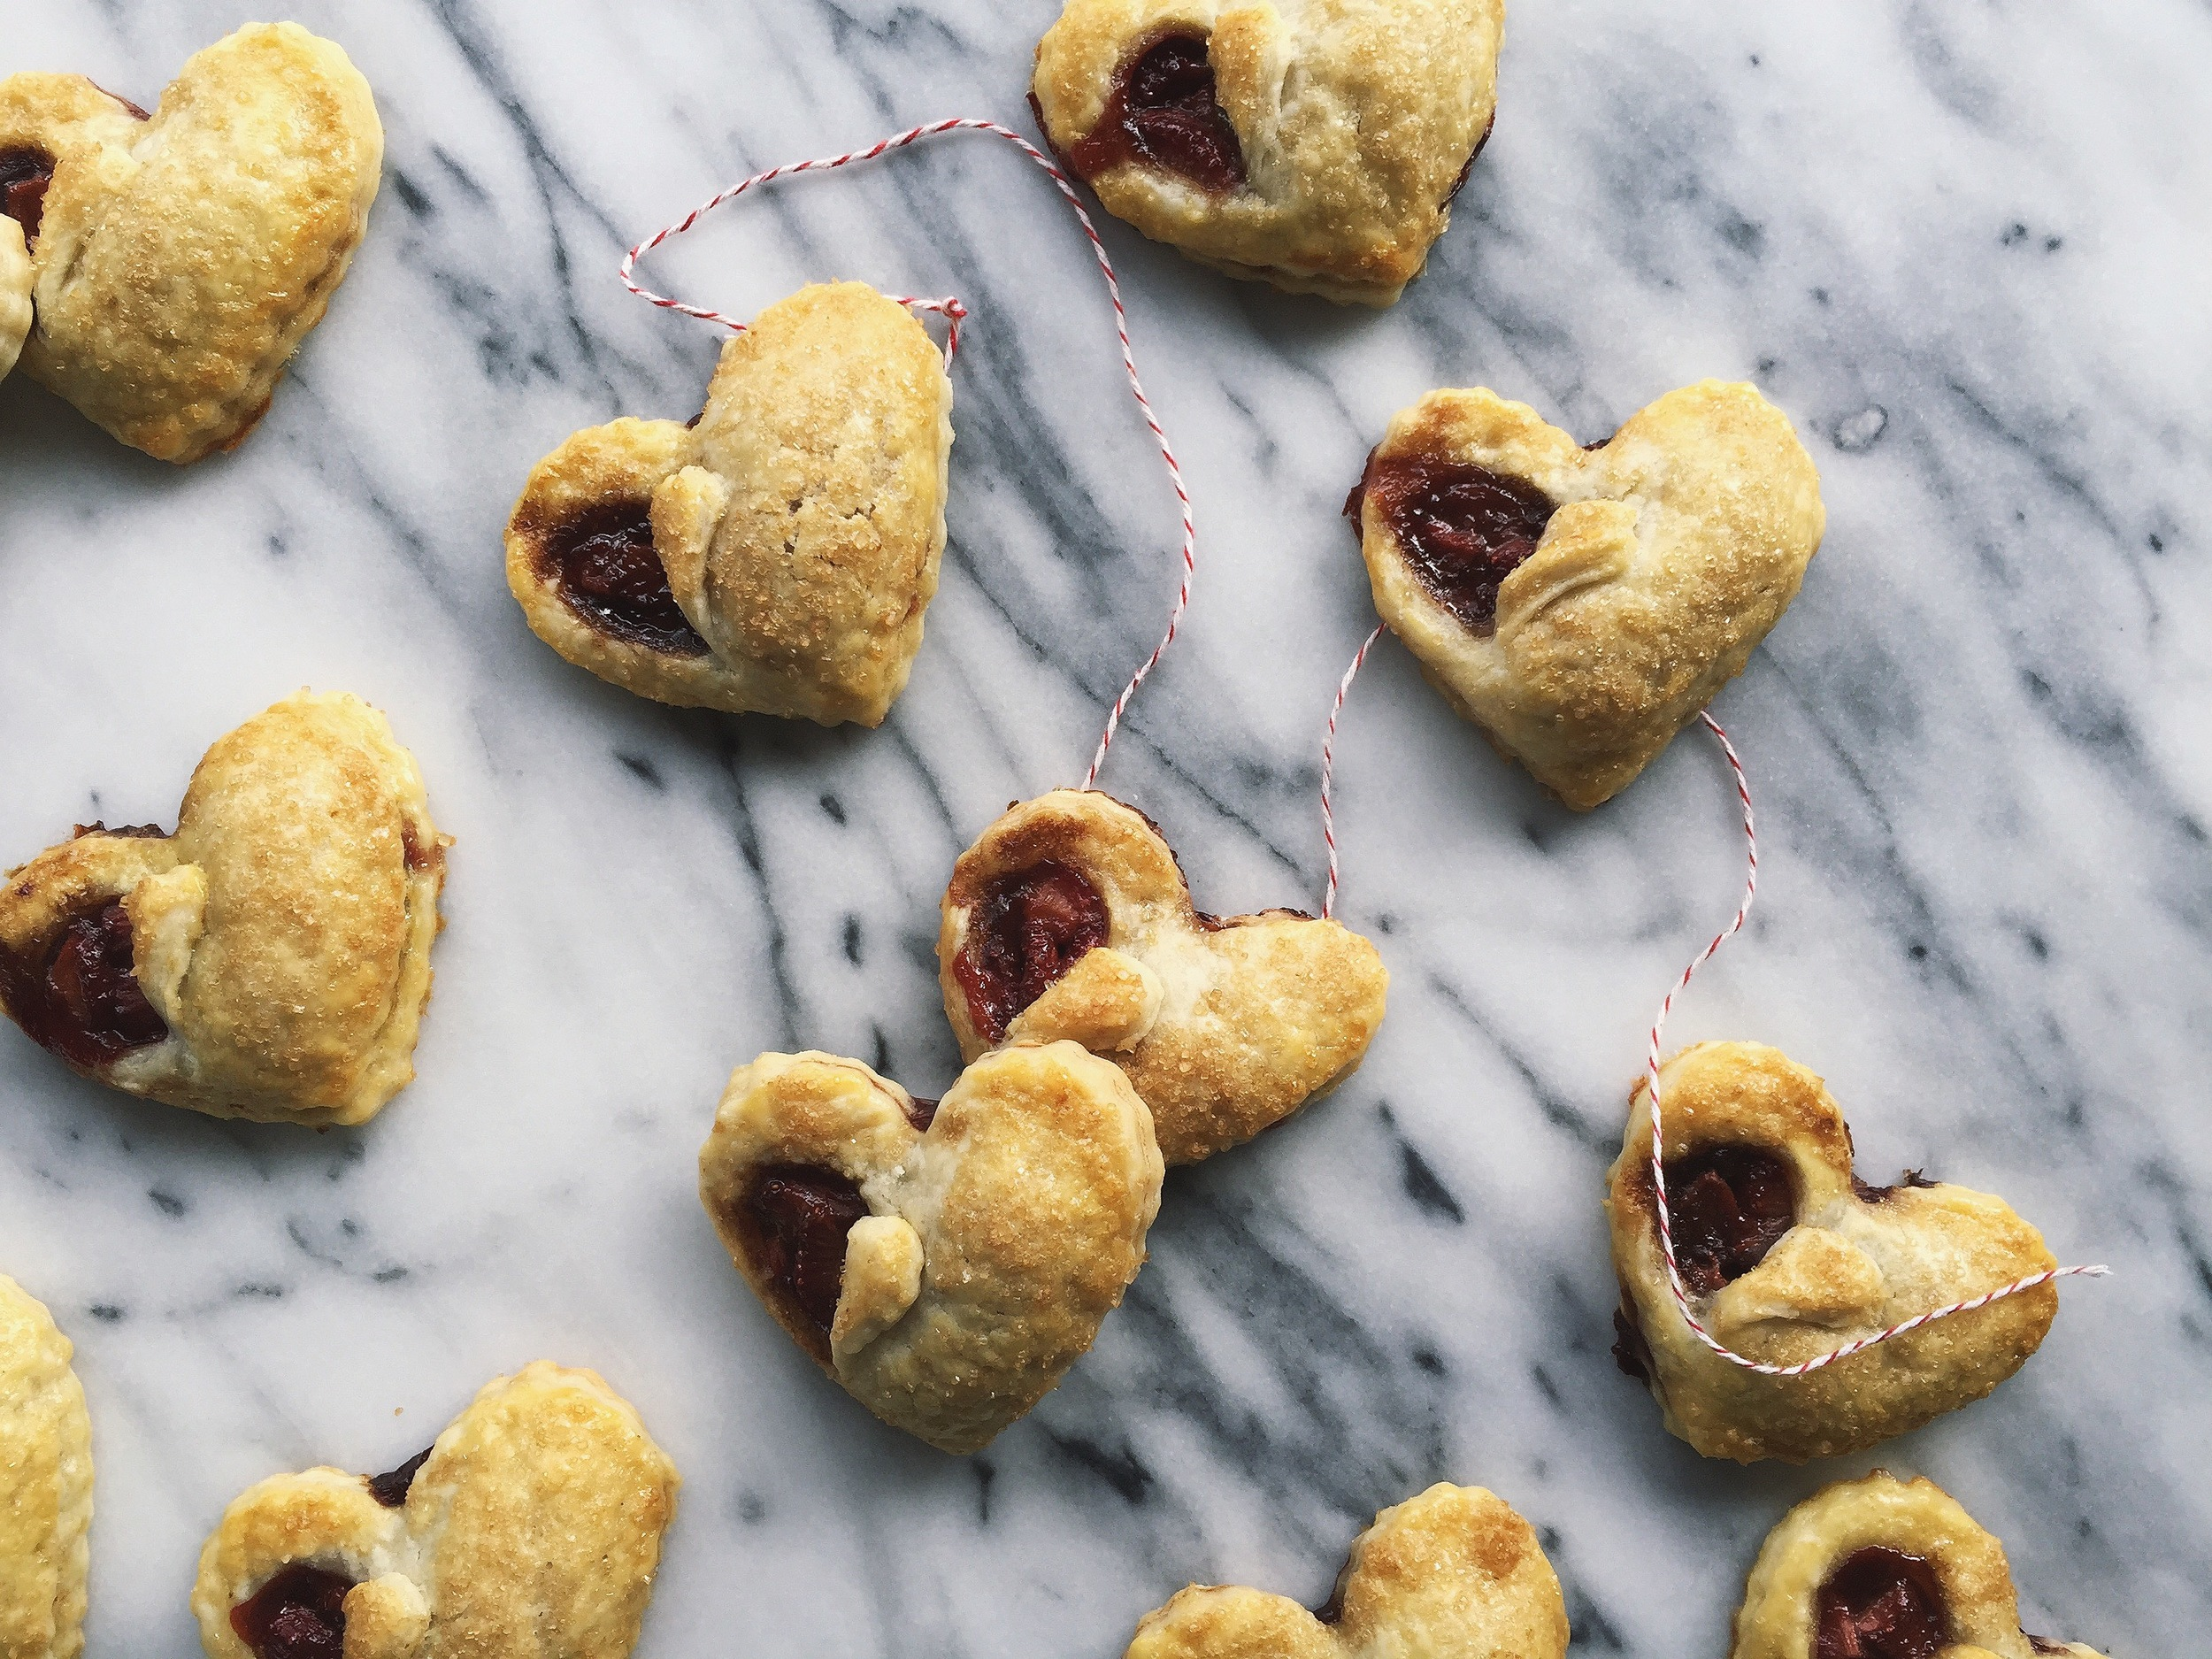 Strawberry Balsamic Hand Pies | All Purpose Flour Child